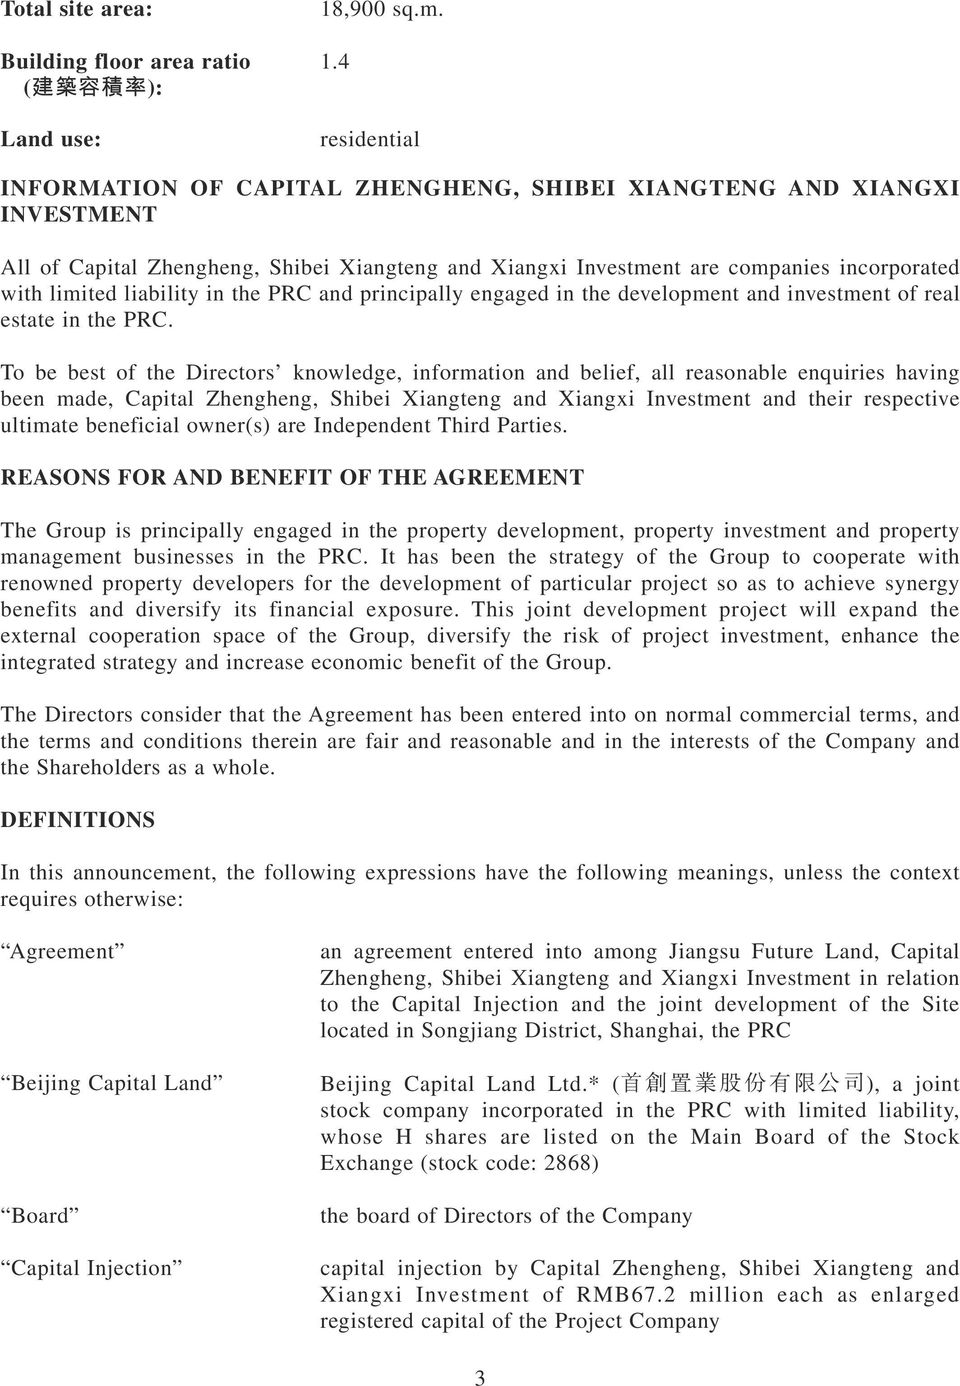 4 residential INFORMATION OF CAPITAL ZHENGHENG, SHIBEI XIANGTENG AND XIANGXI INVESTMENT All of Capital Zhengheng, Shibei Xiangteng and Xiangxi Investment are companies incorporated with limited